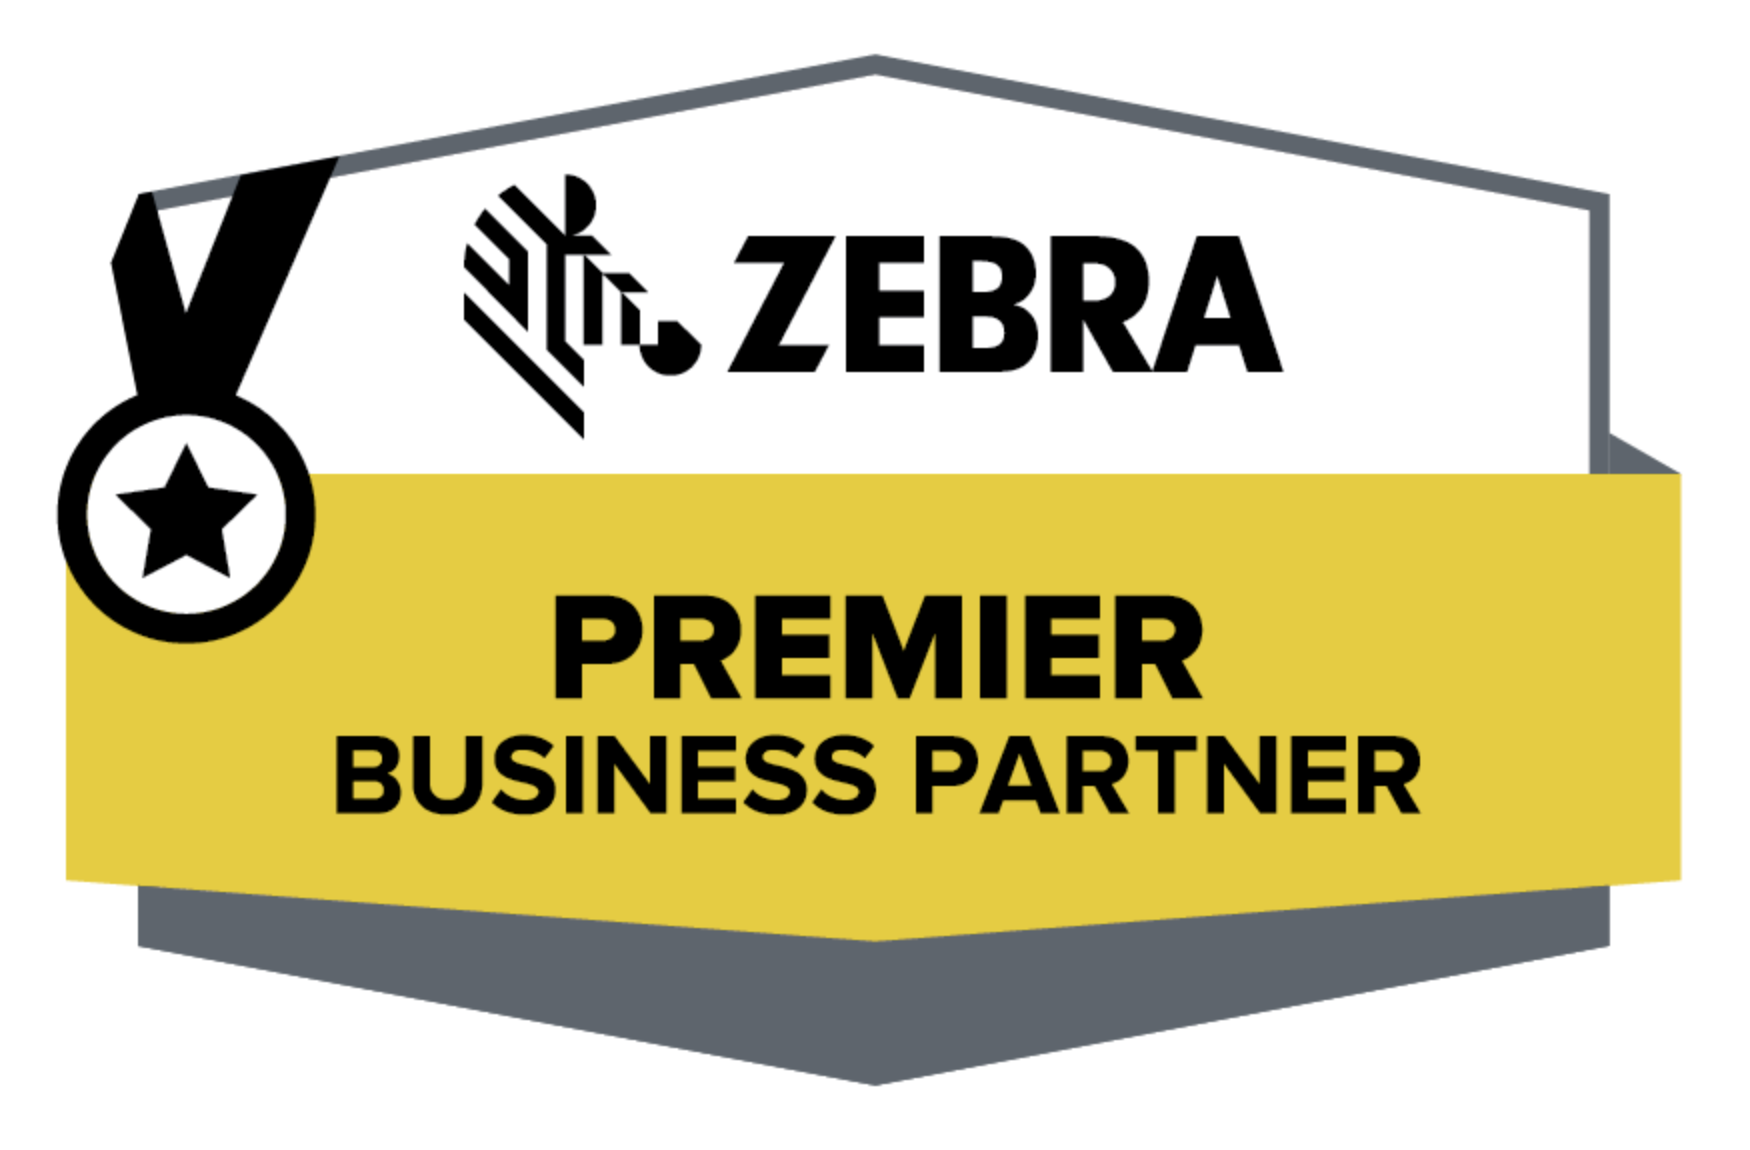 zebra-pemier-business-partner.png